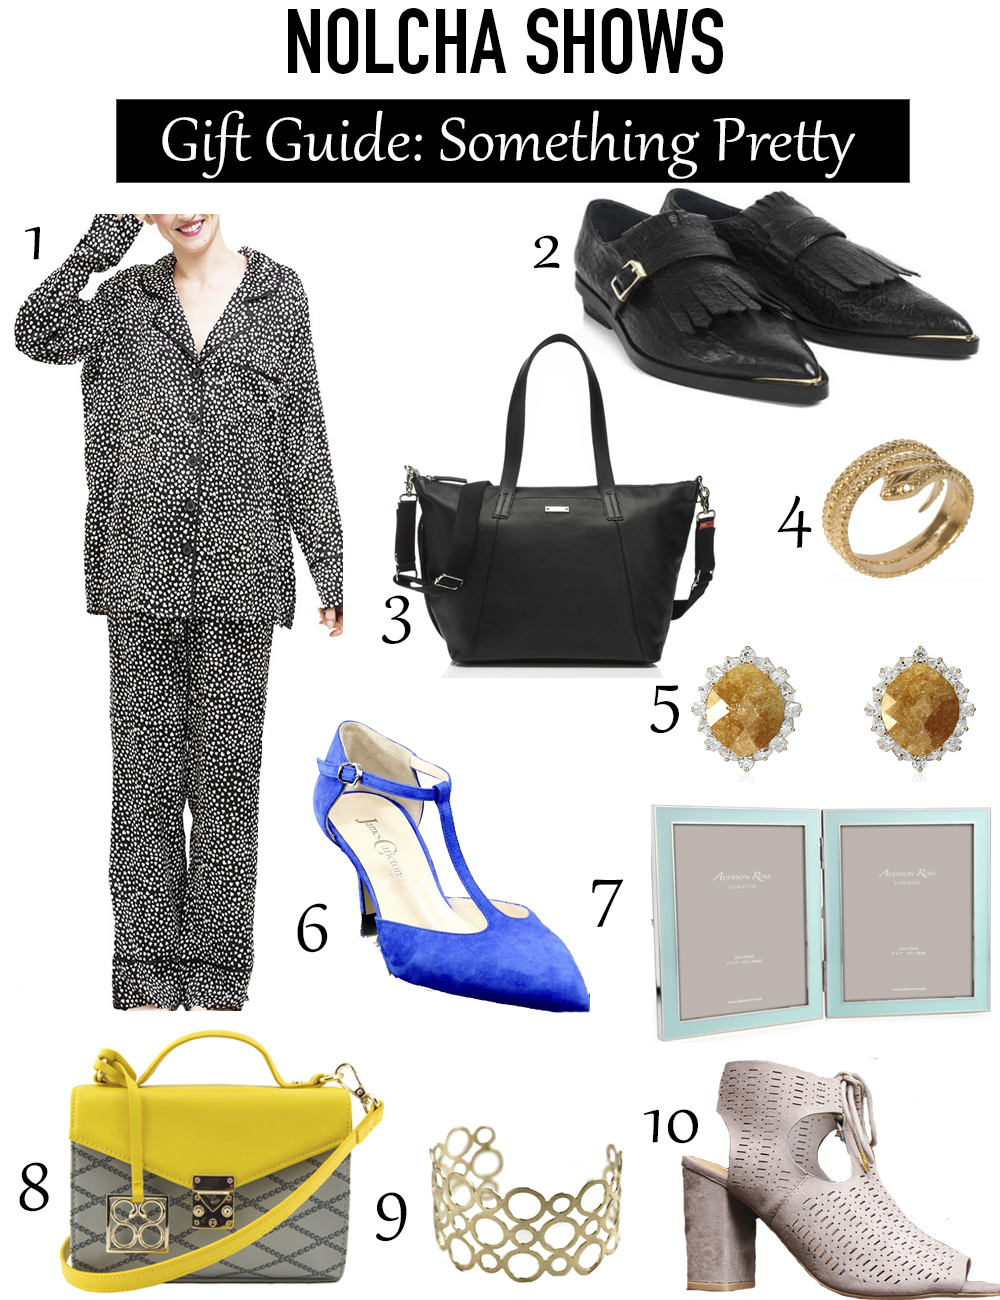 mmh-gift-guide-something-pretty